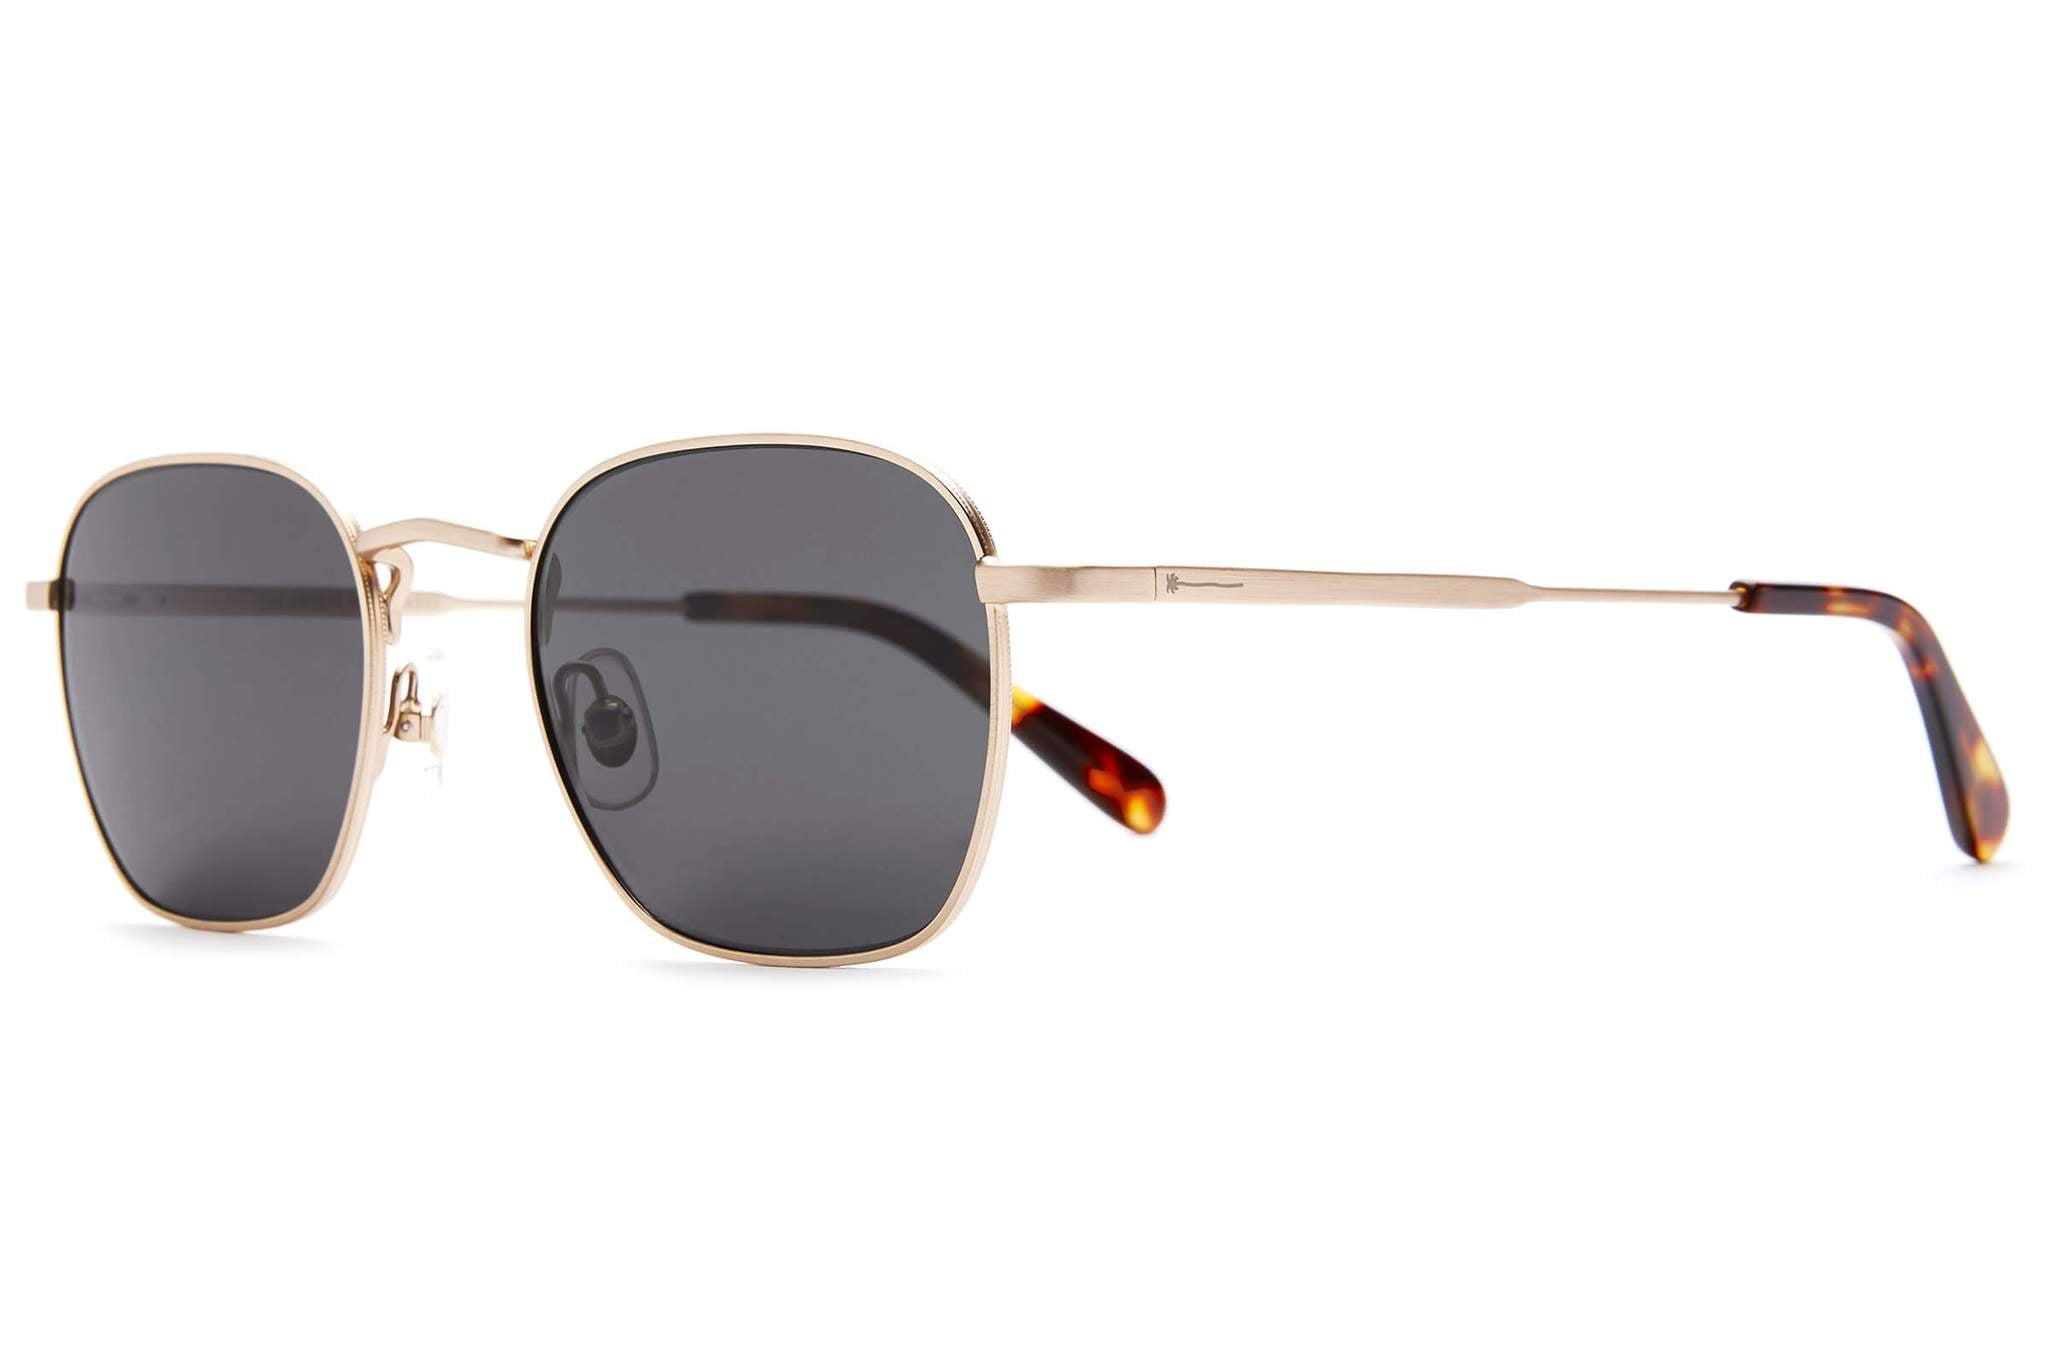 THE GROOVE PILOT / POLARISED BRUSHED GOLD & DARK TORTOISE